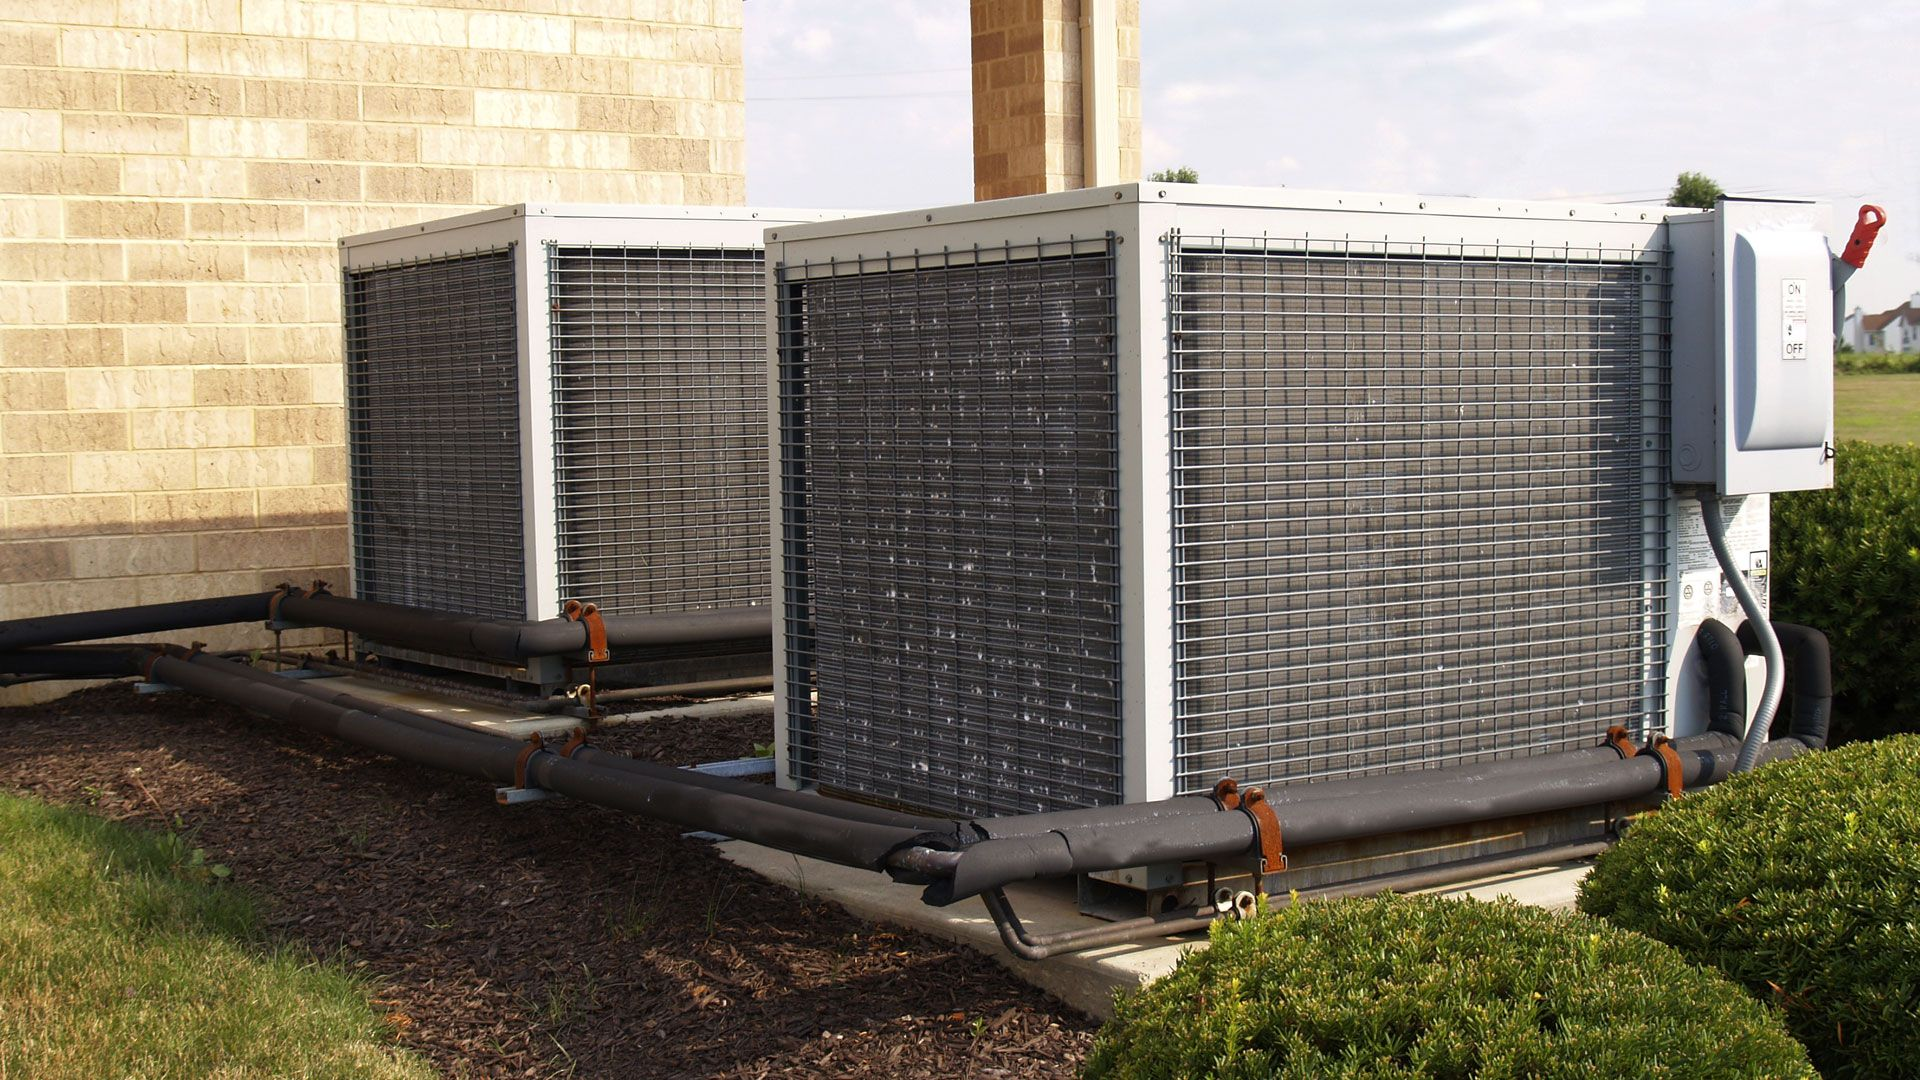 Commercial Heating and Cooling in Riverside Cool photos